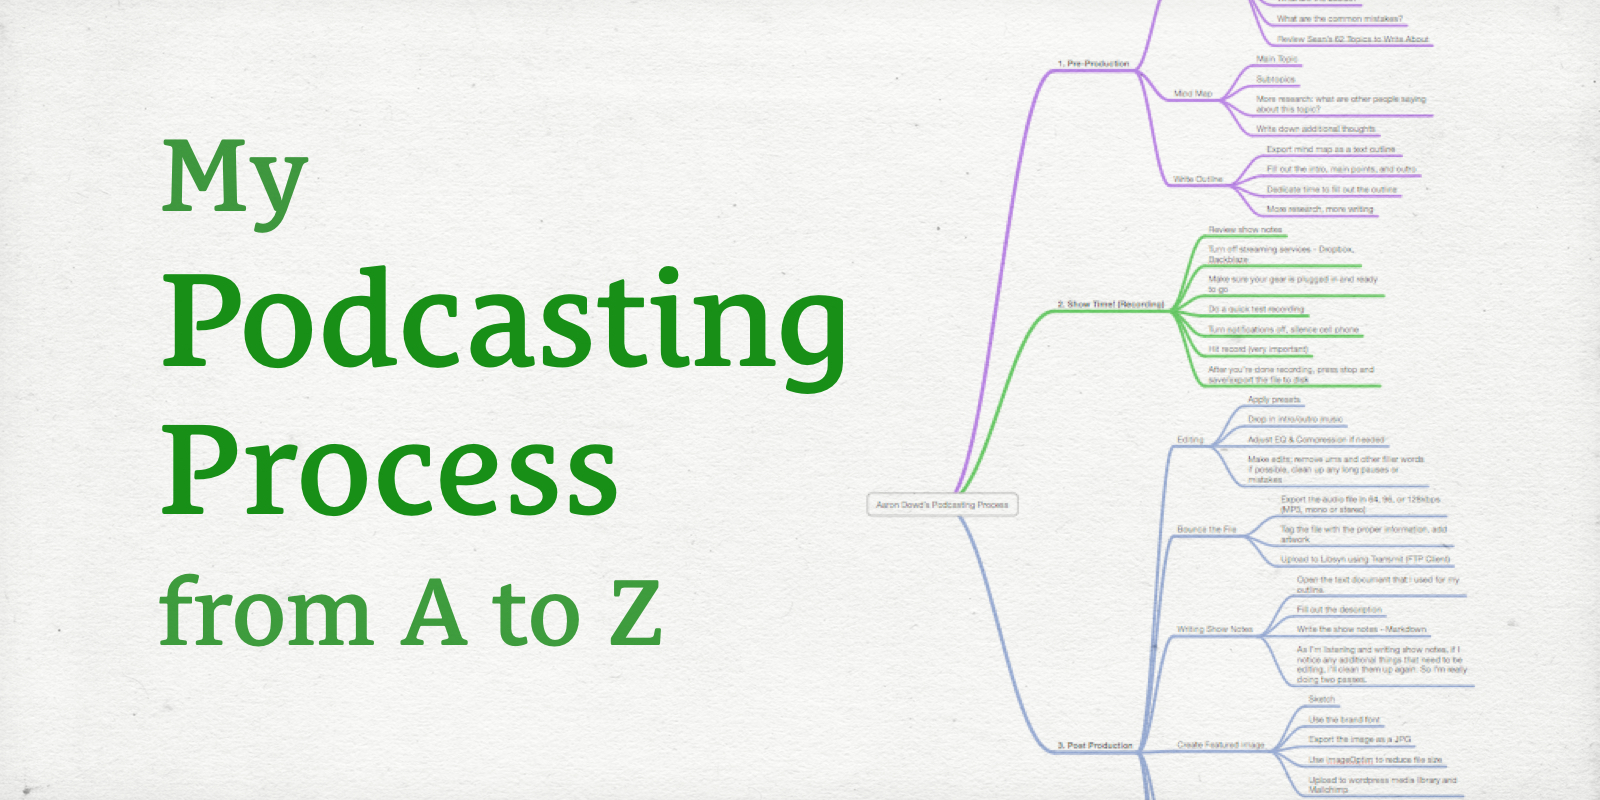 The Podcast Dude 24: My Podcasting Process